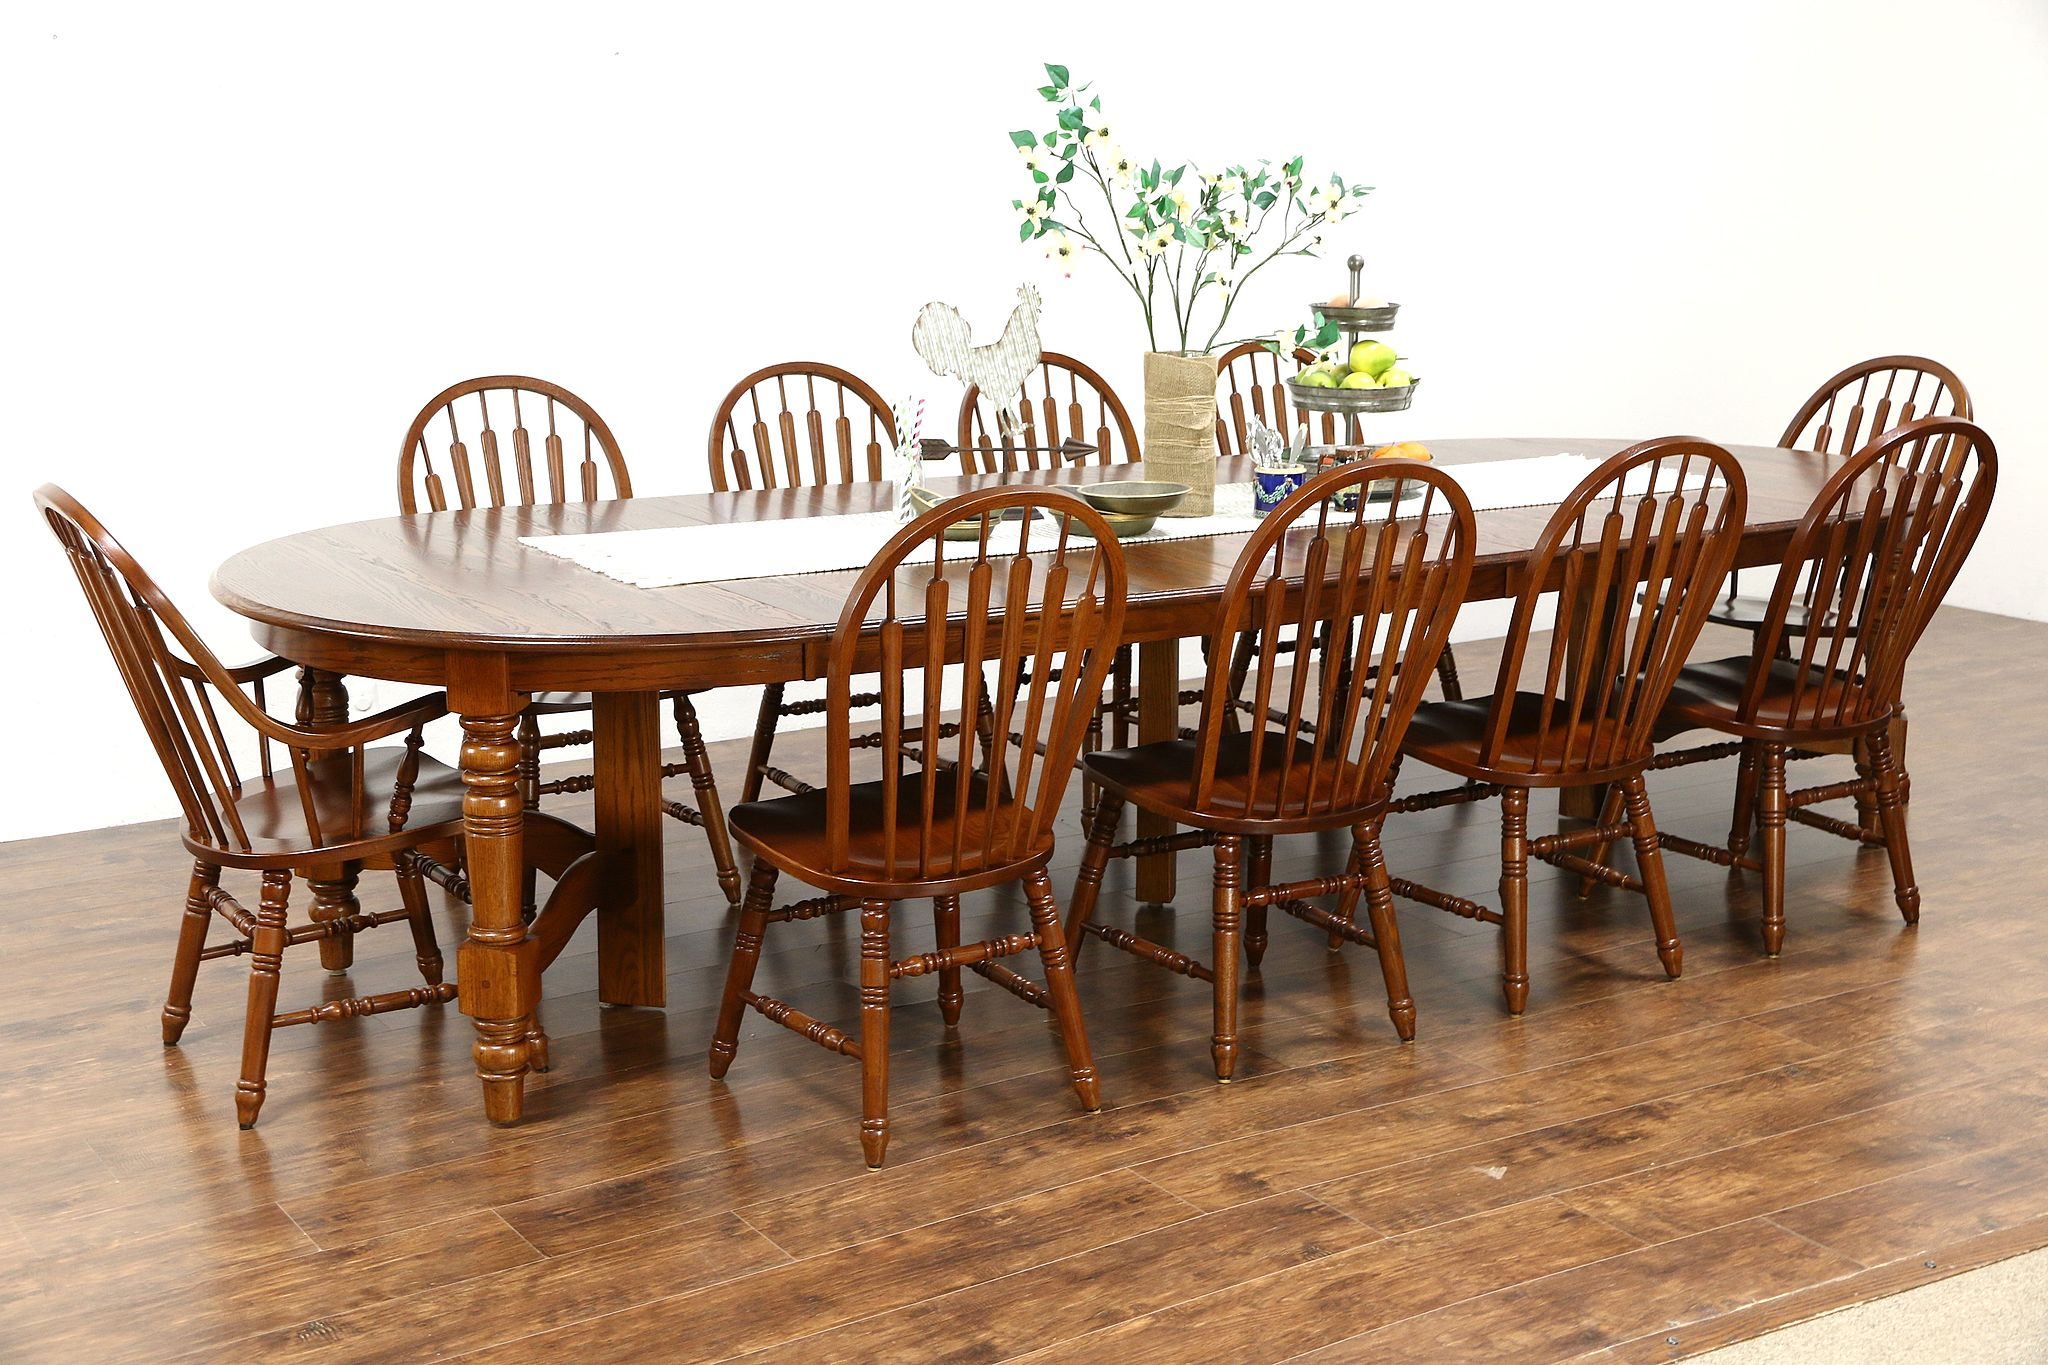 dining table 10 chairs. oak vintage dining set, 54\ table 10 chairs e